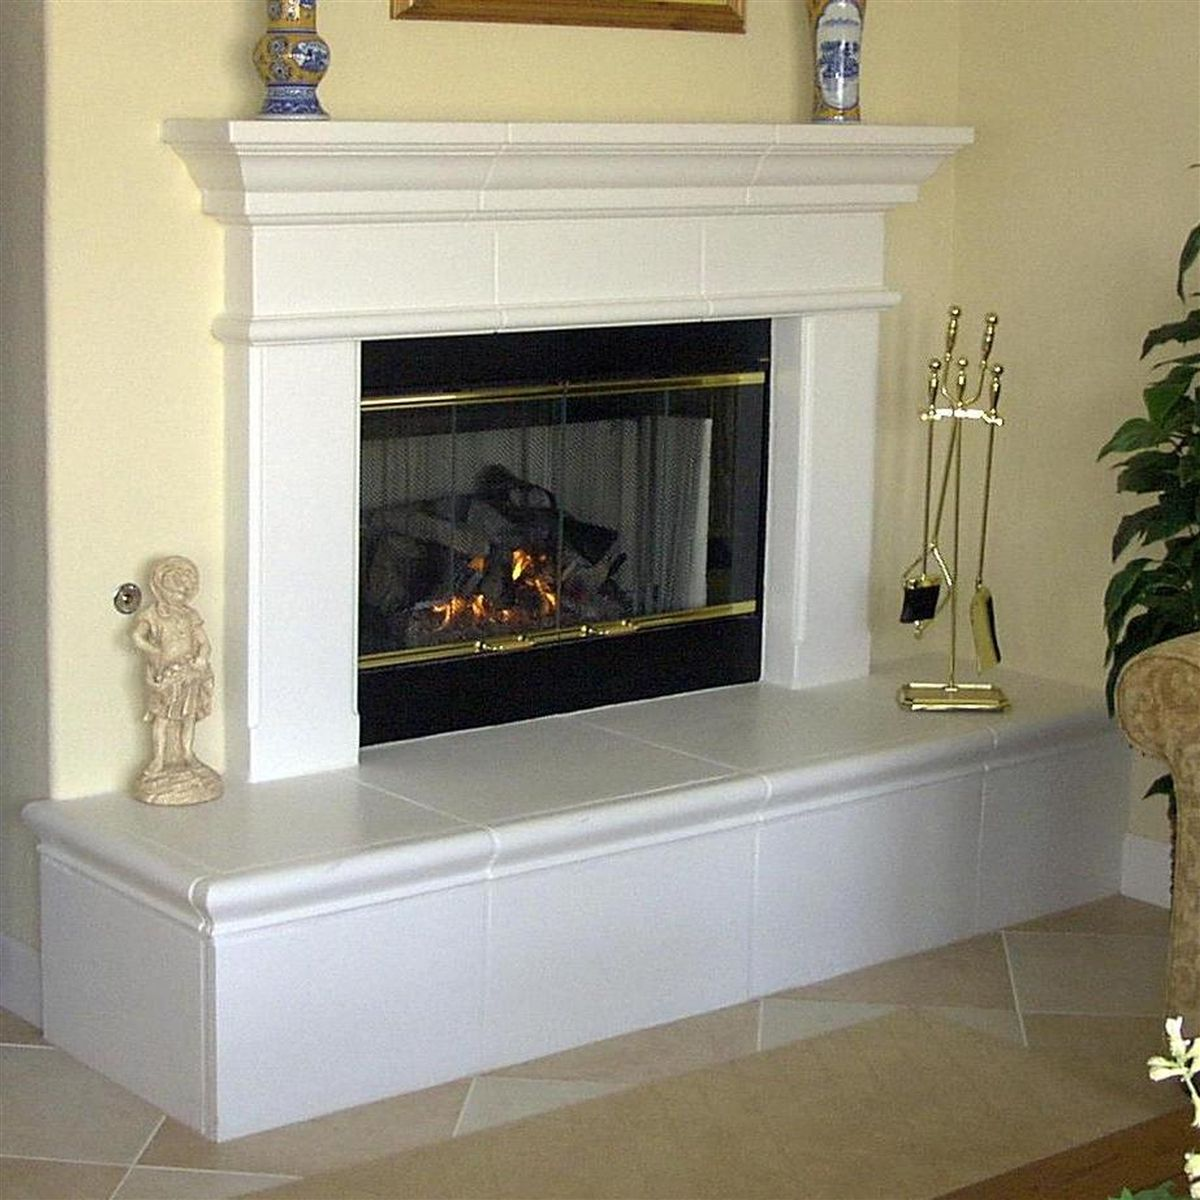 Raised Hearth Fireplace Designs: Fireplace Raised Hearth Updated With Wood Trim